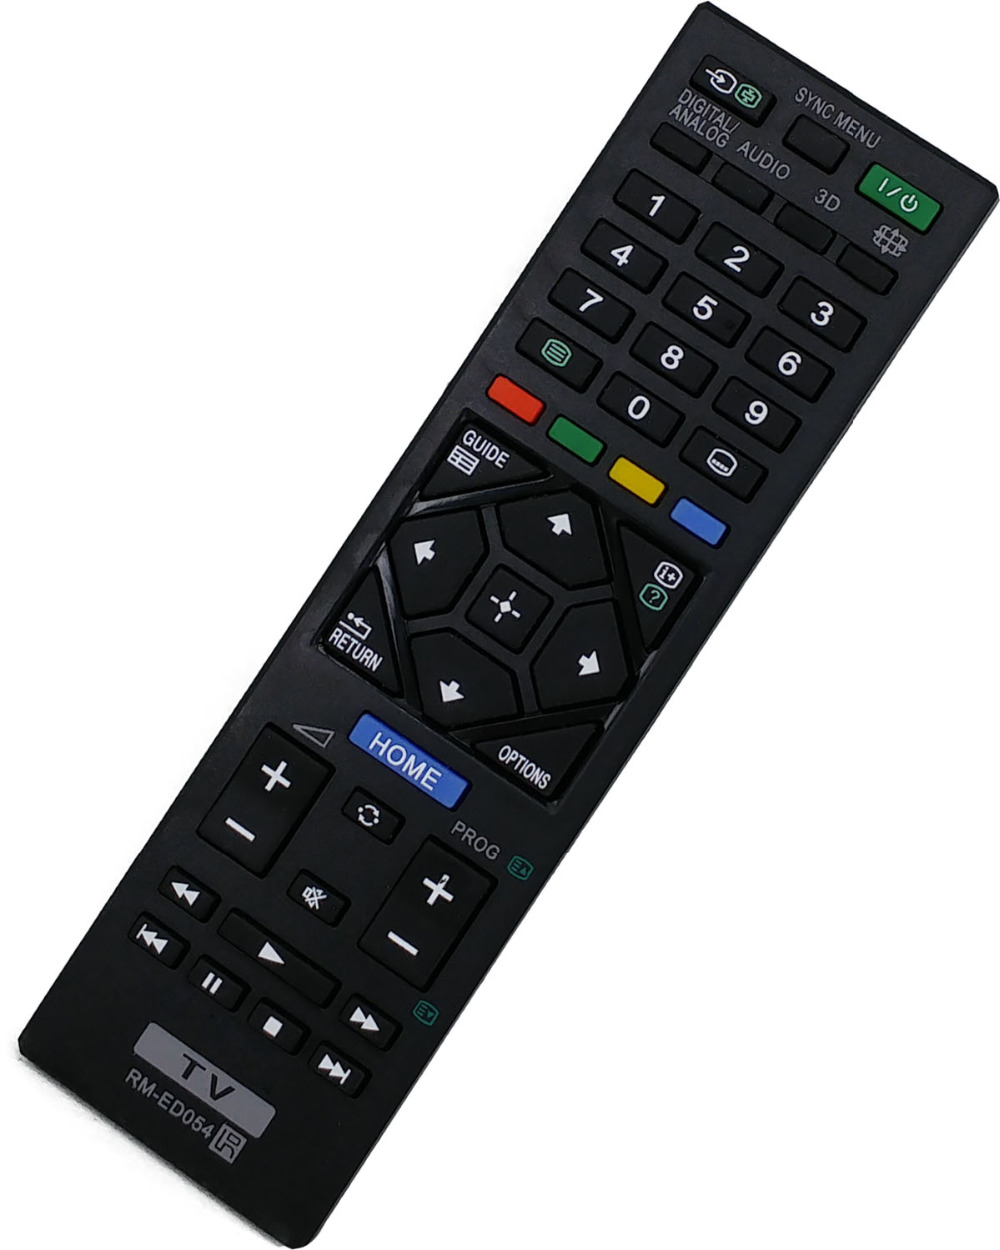 TV Remote Control RM-ED054 Fit For Sony KDL-46R470A KDL-32R420A KDL-46R473A KDL-32R420A KDL-40R470A KDL-46R470A